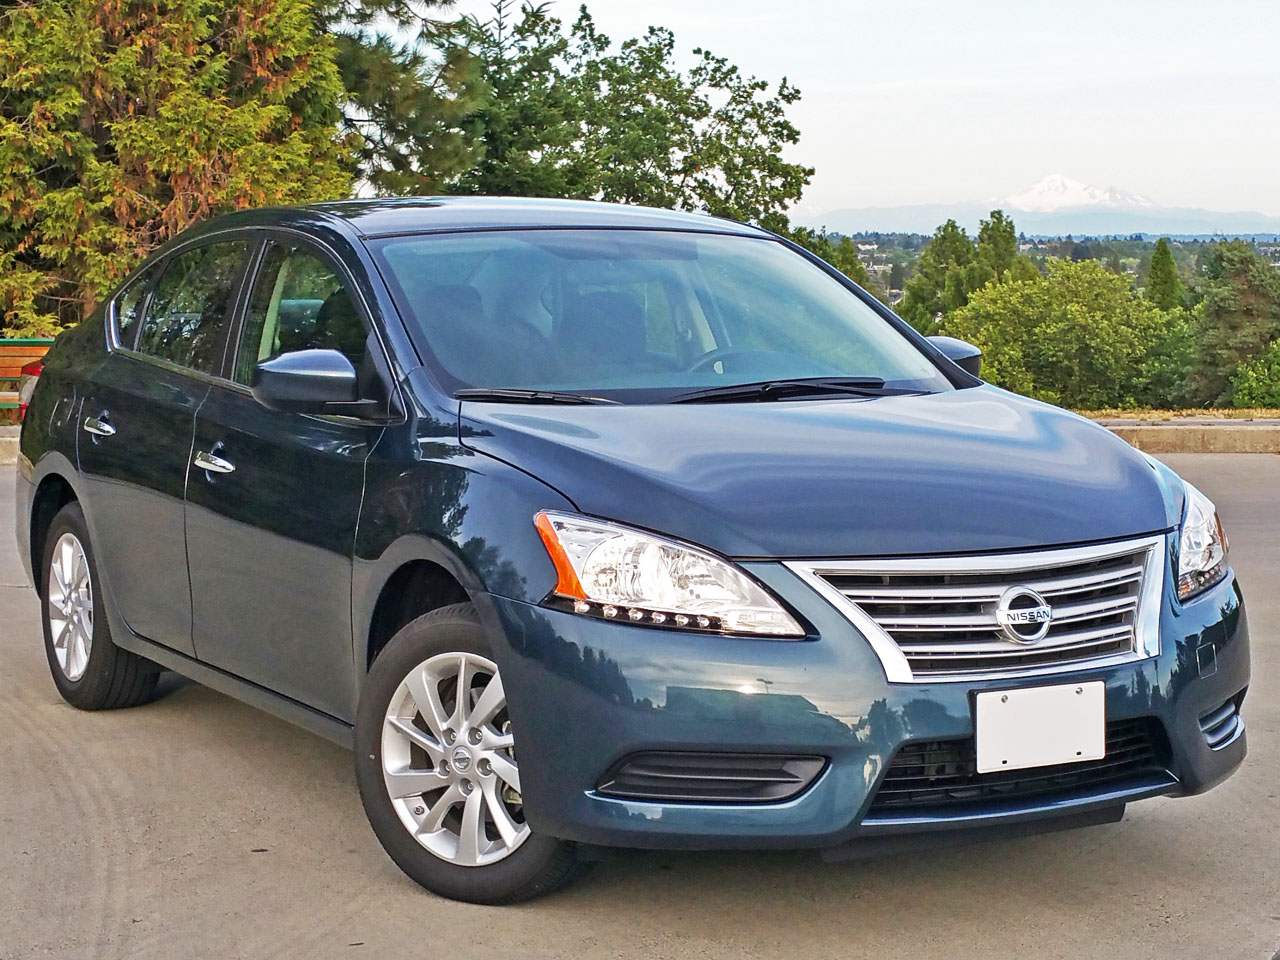 2015 Nissan Sentra SV Road Test Review | CarCostCanada™